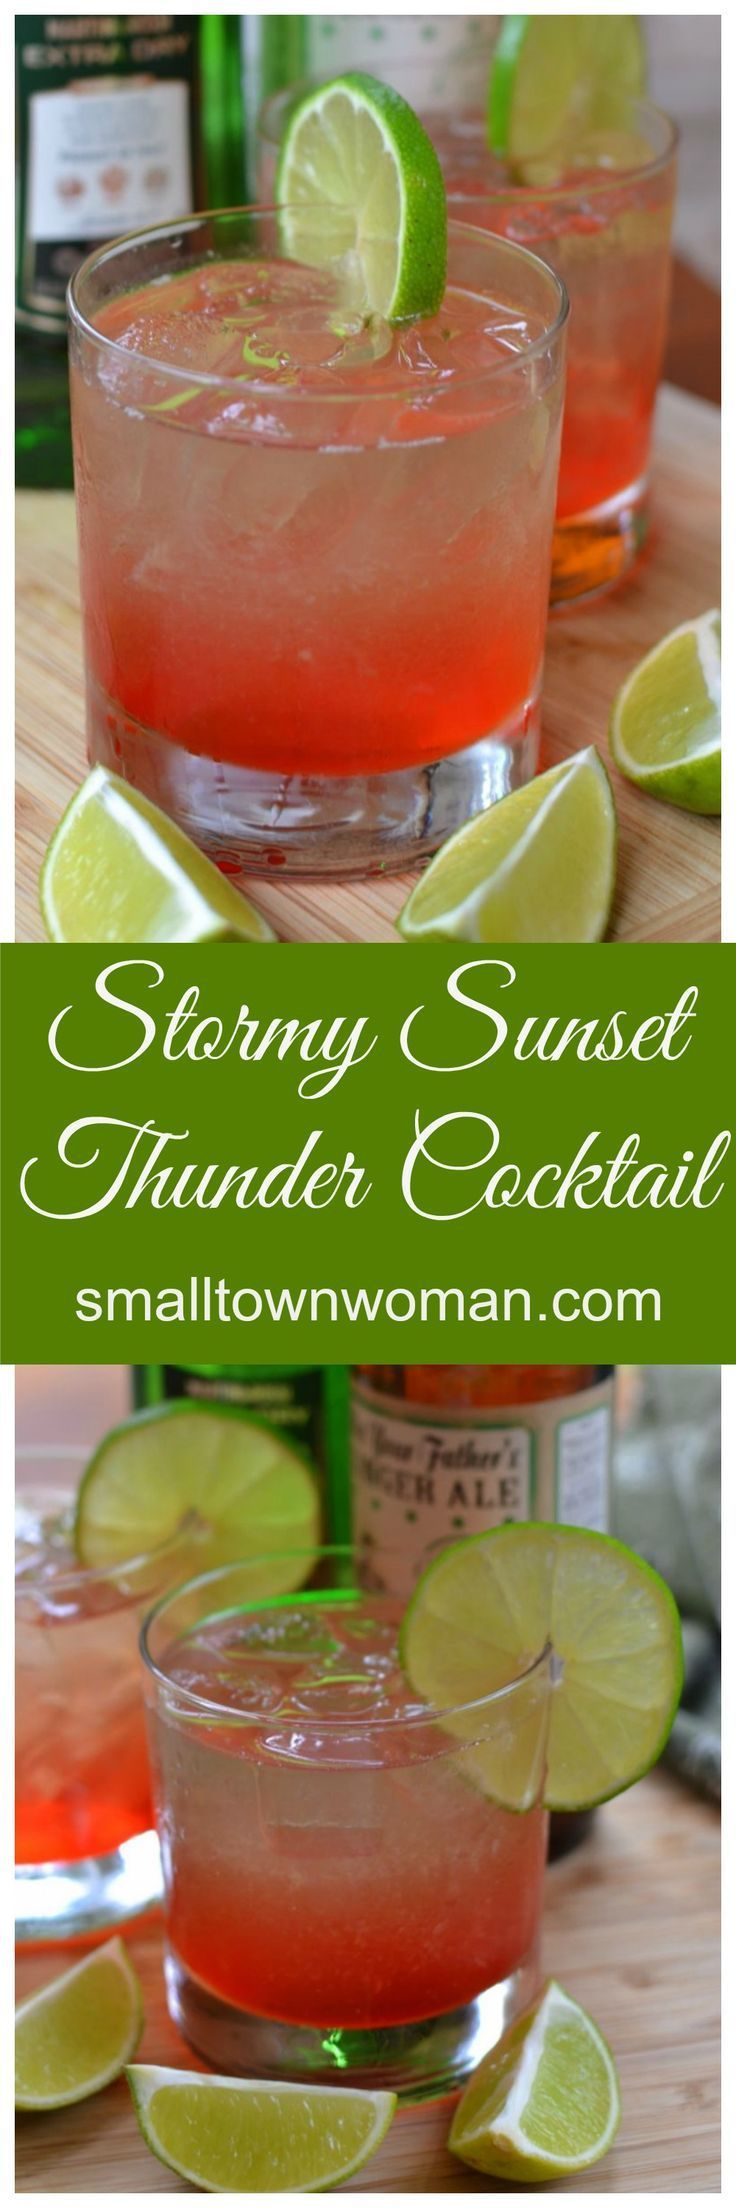 This beauty is a twist between the Dark & Stormy Cocktail and the Stormy Sunset Cocktail.